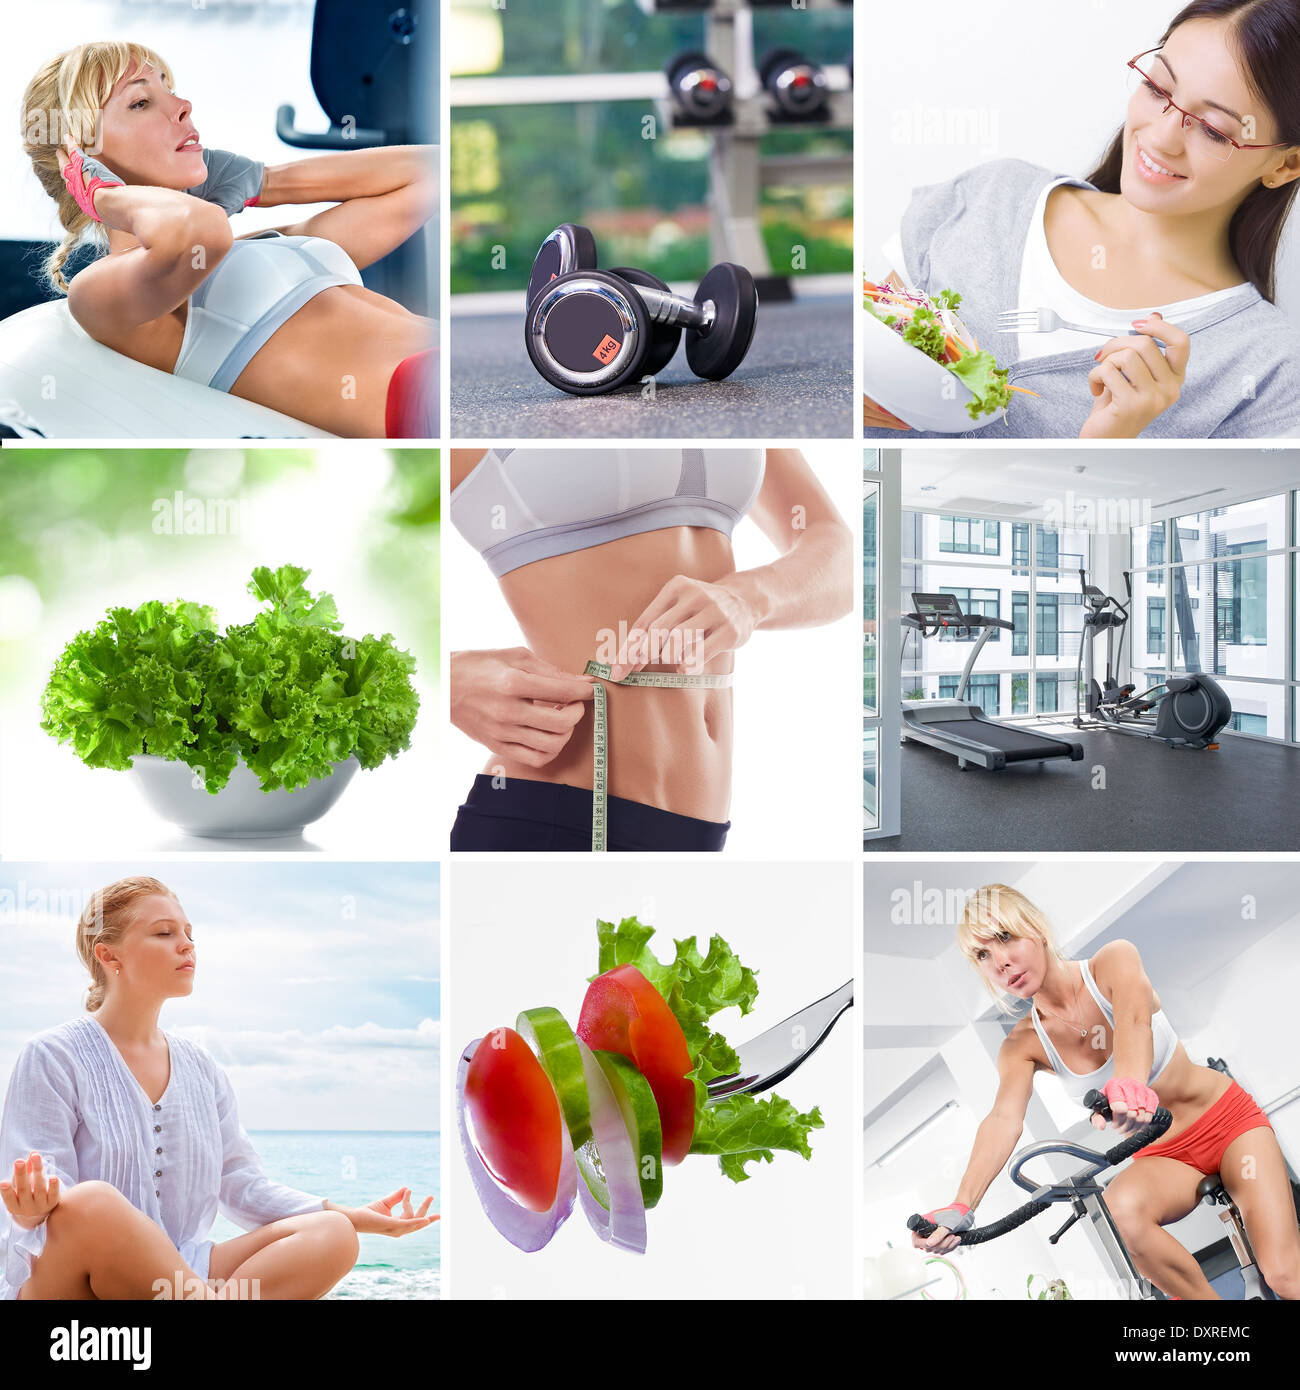 Healthy lifestyle  theme collage composed of different images - Stock Image